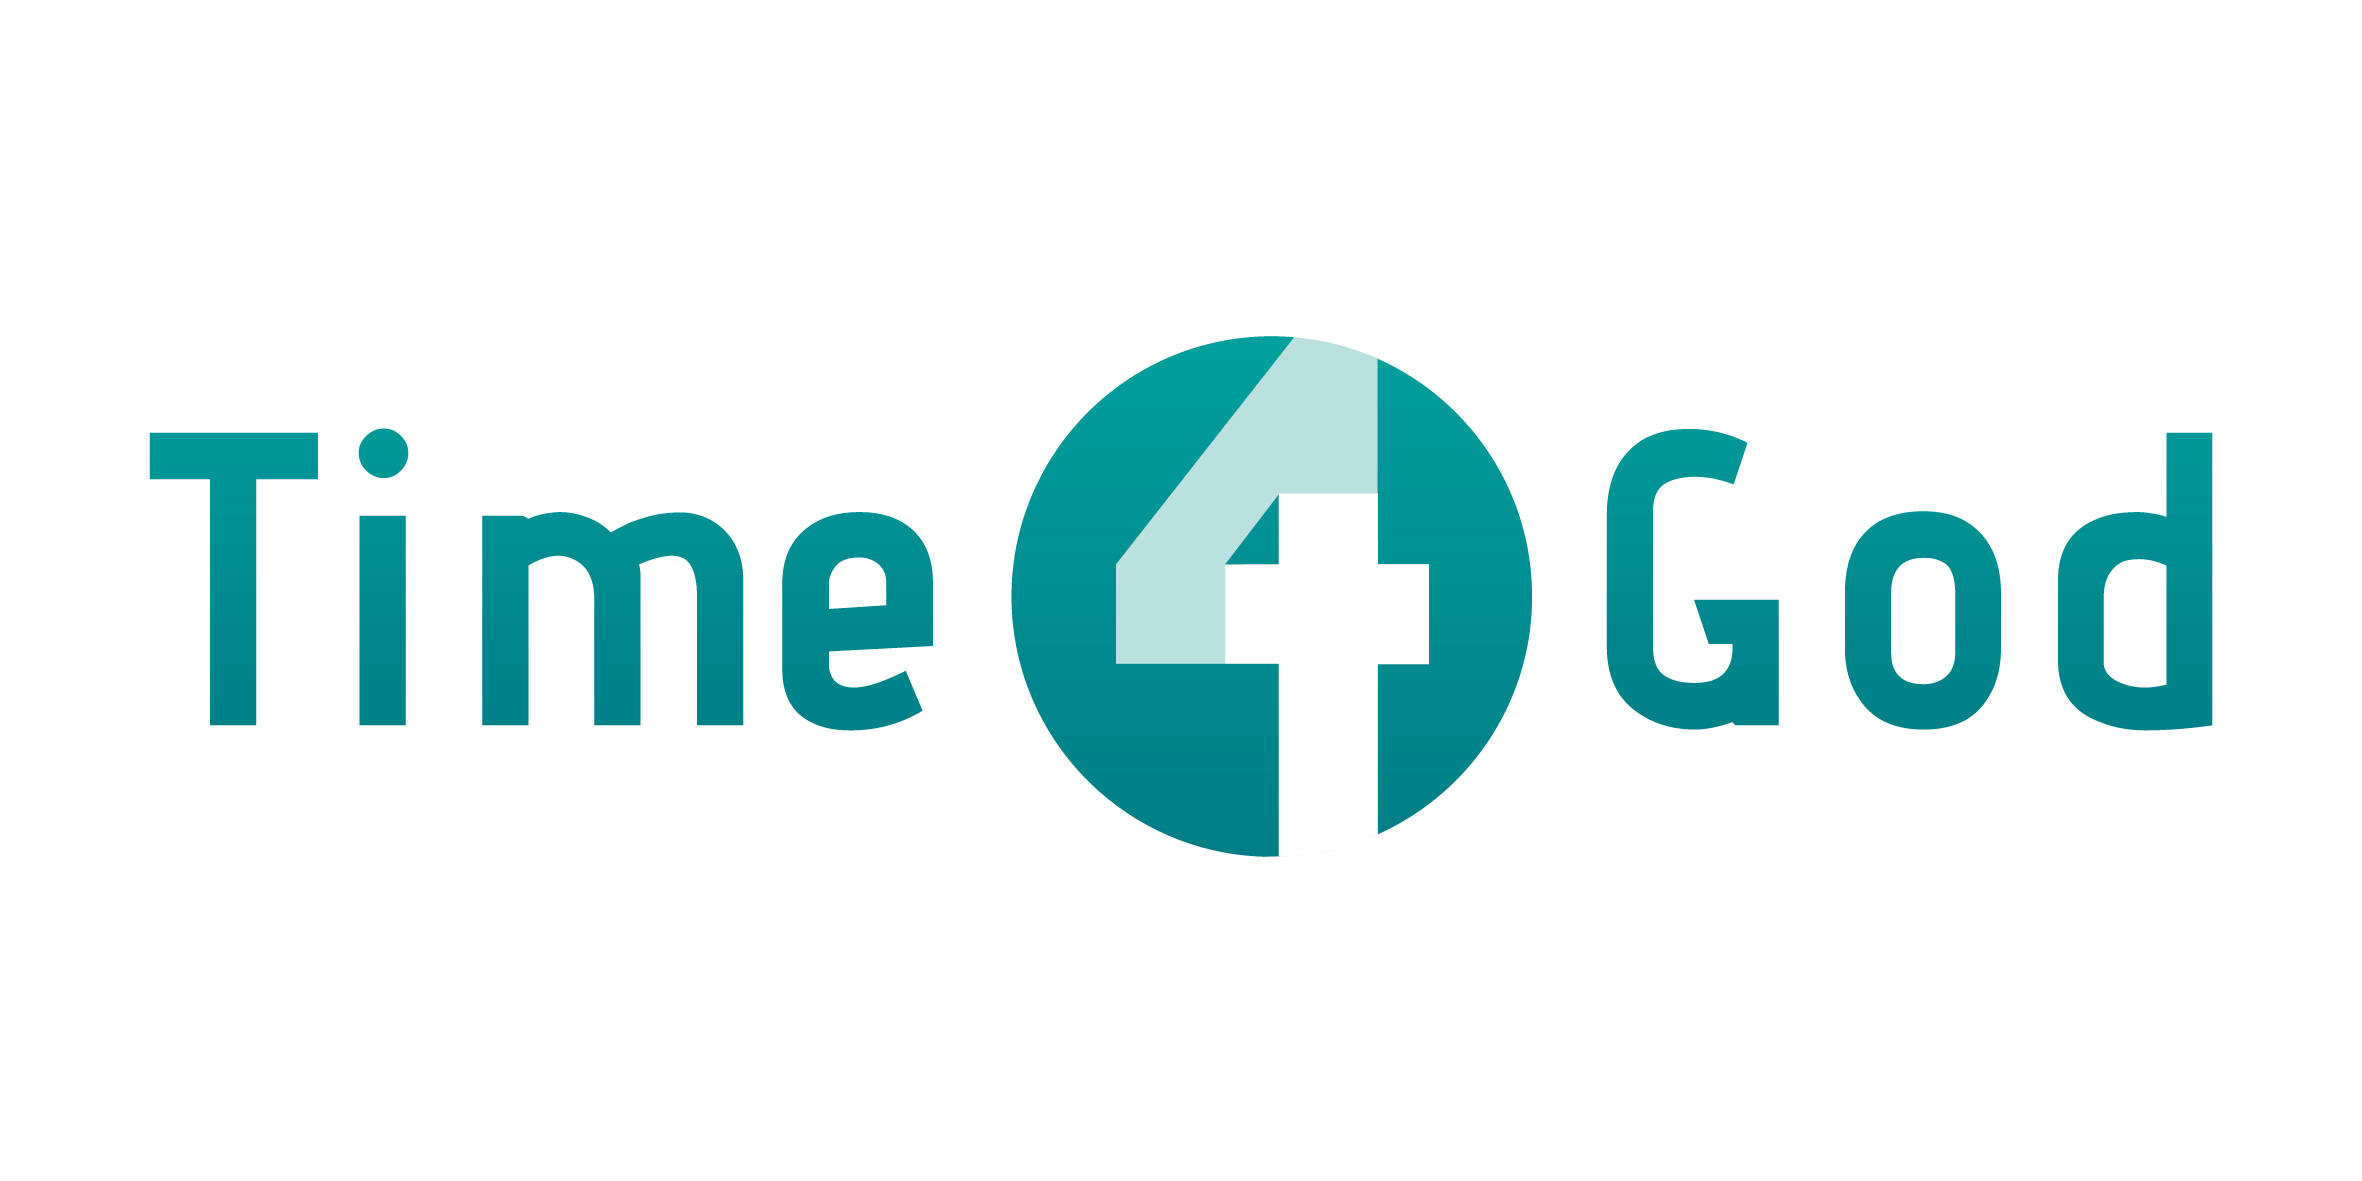 Time4God logo